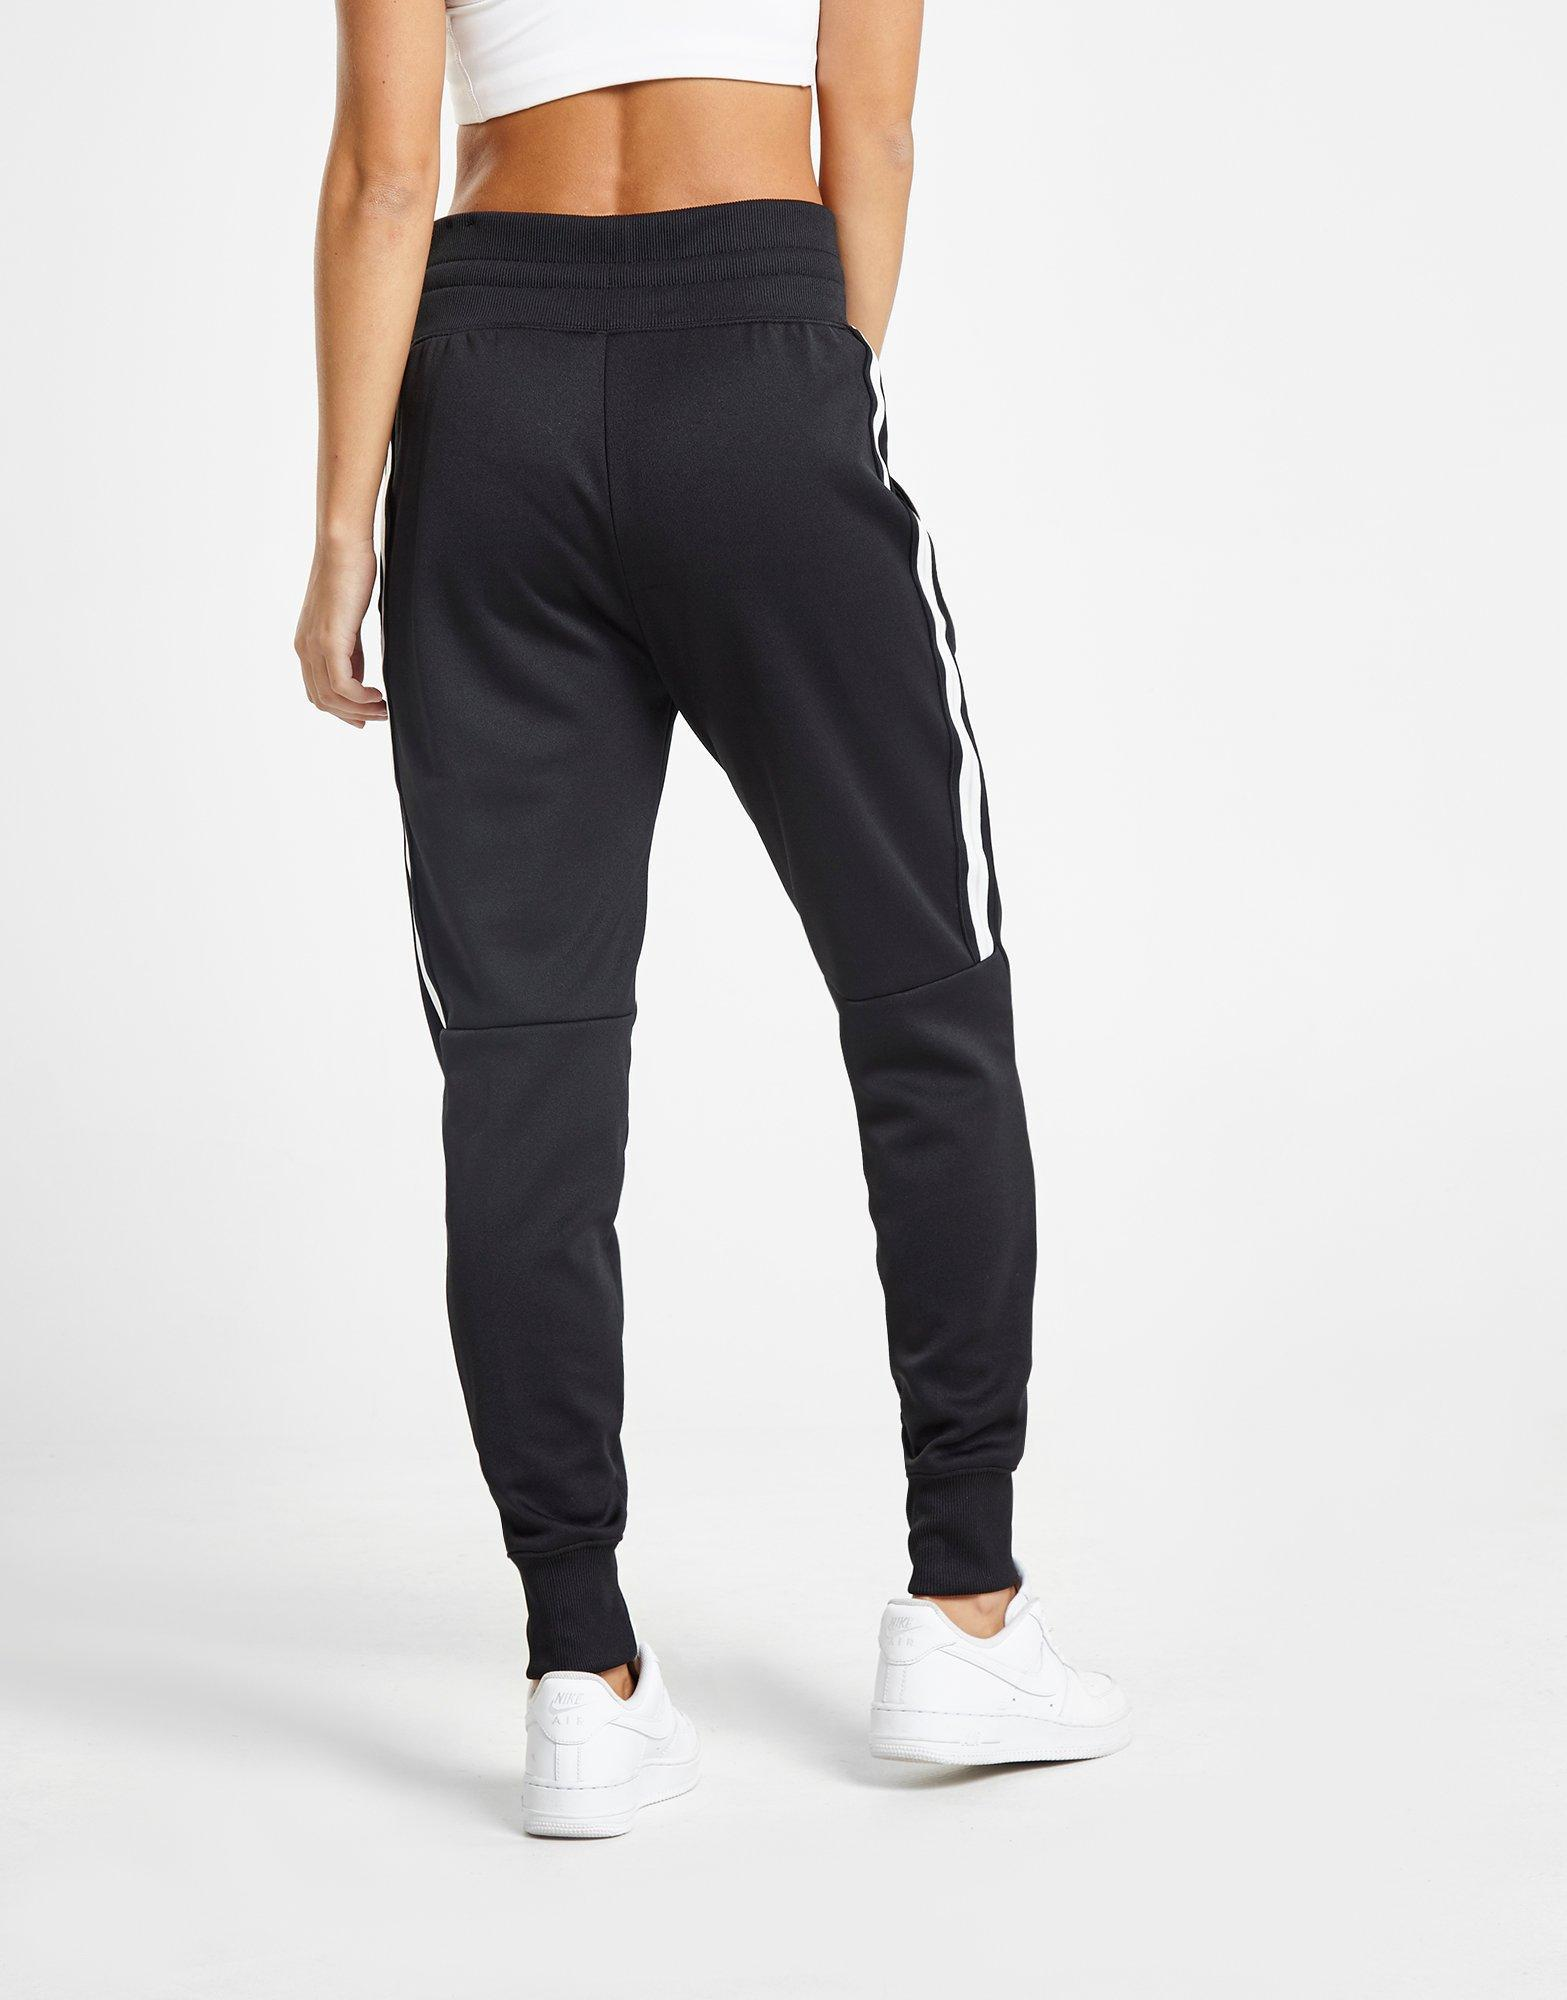 In Lyst Poly Stripe Nike Track Pants Black rdCtshQ